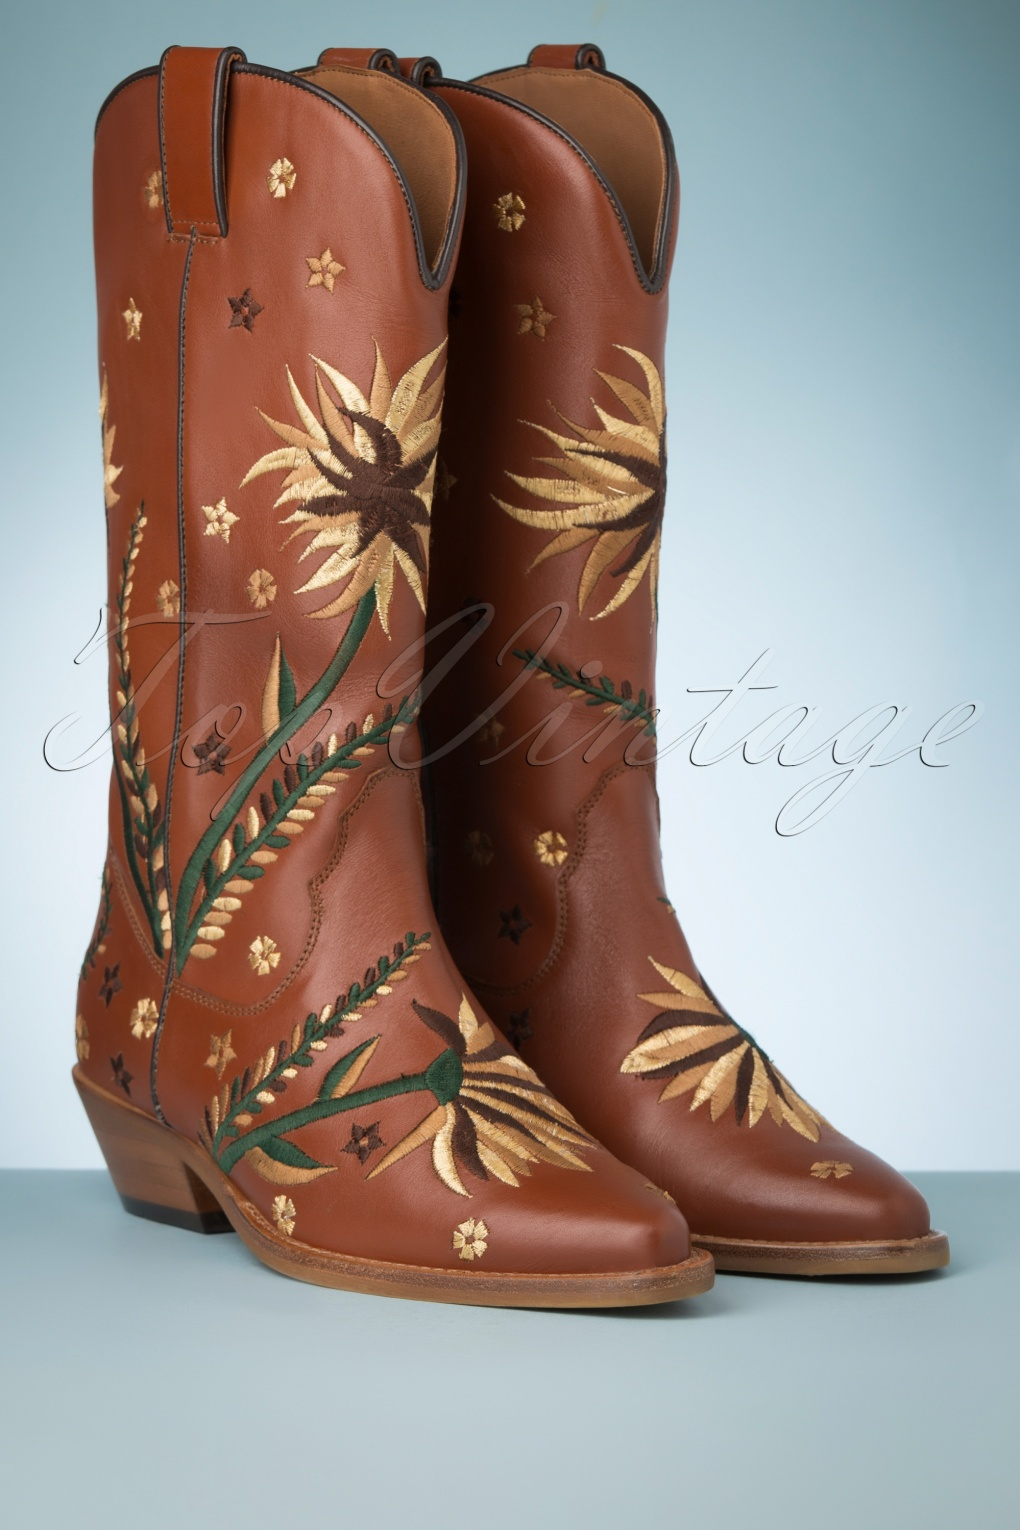 Vintage Western Wear Clothing, Outfit Ideas 70s Flor Embroidery Western Boots in Cognac £141.86 AT vintagedancer.com